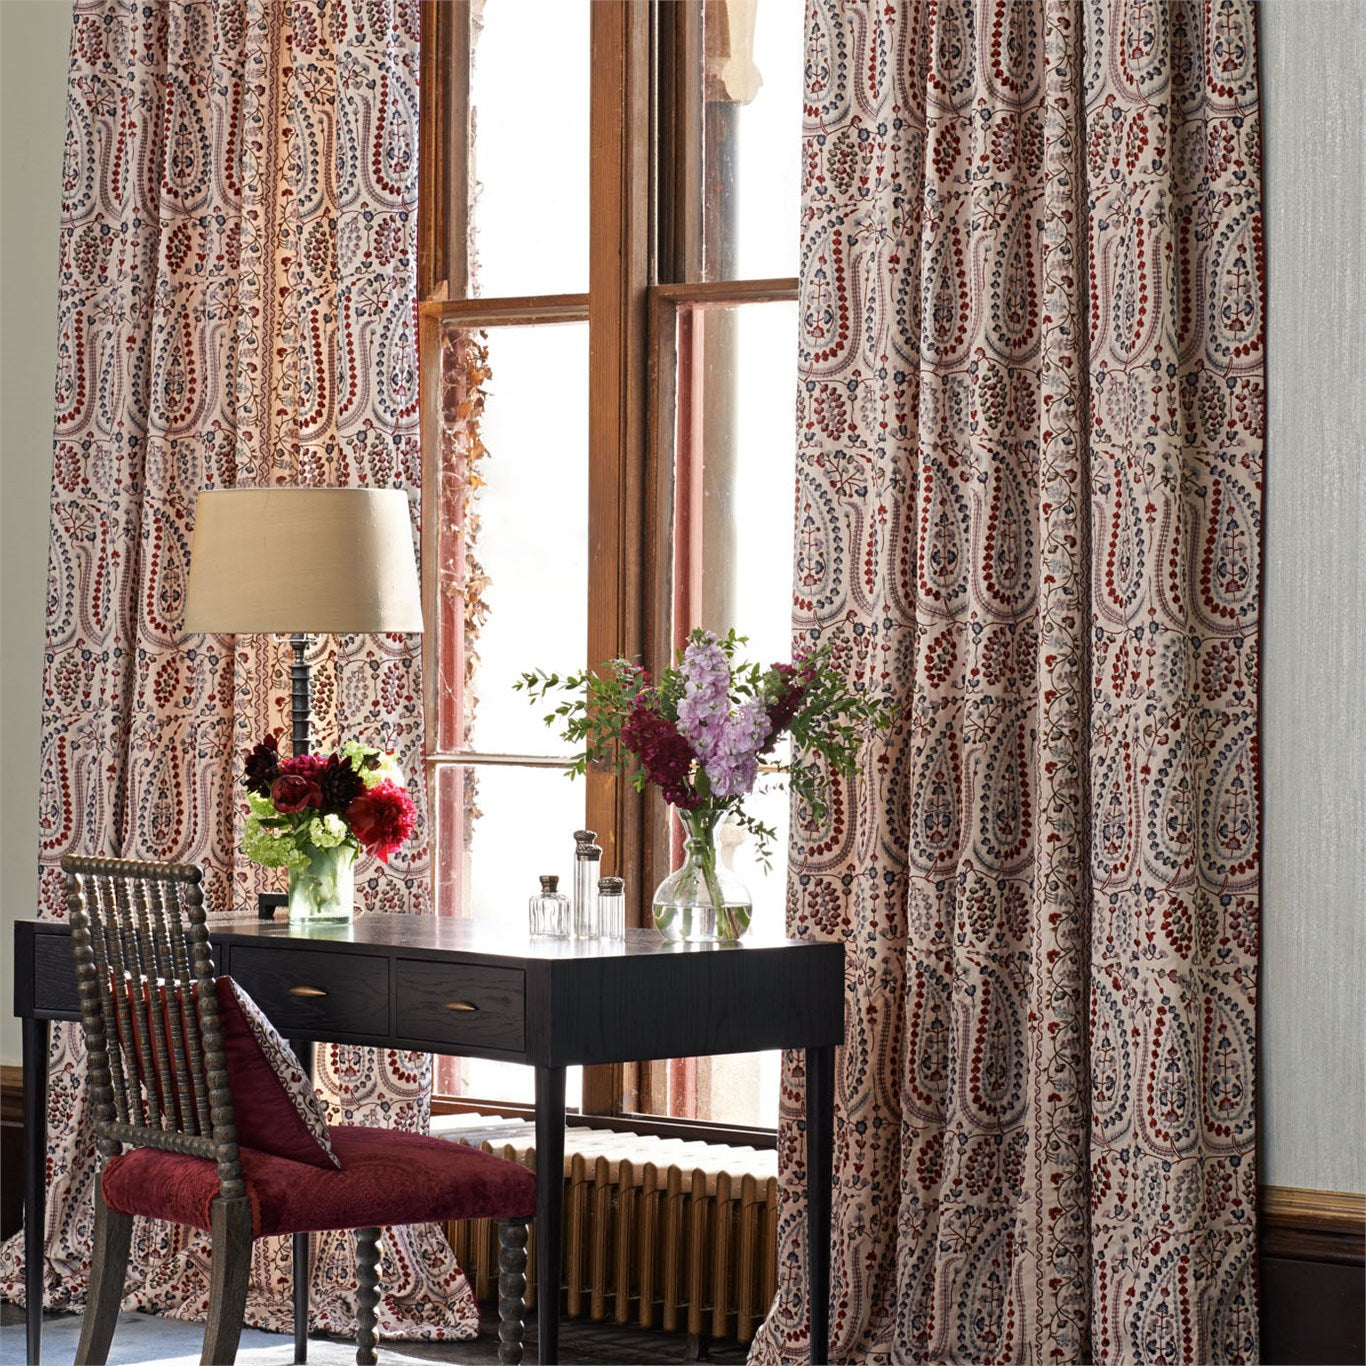 Zoffany Jayshree embroidery curtains with writing desk